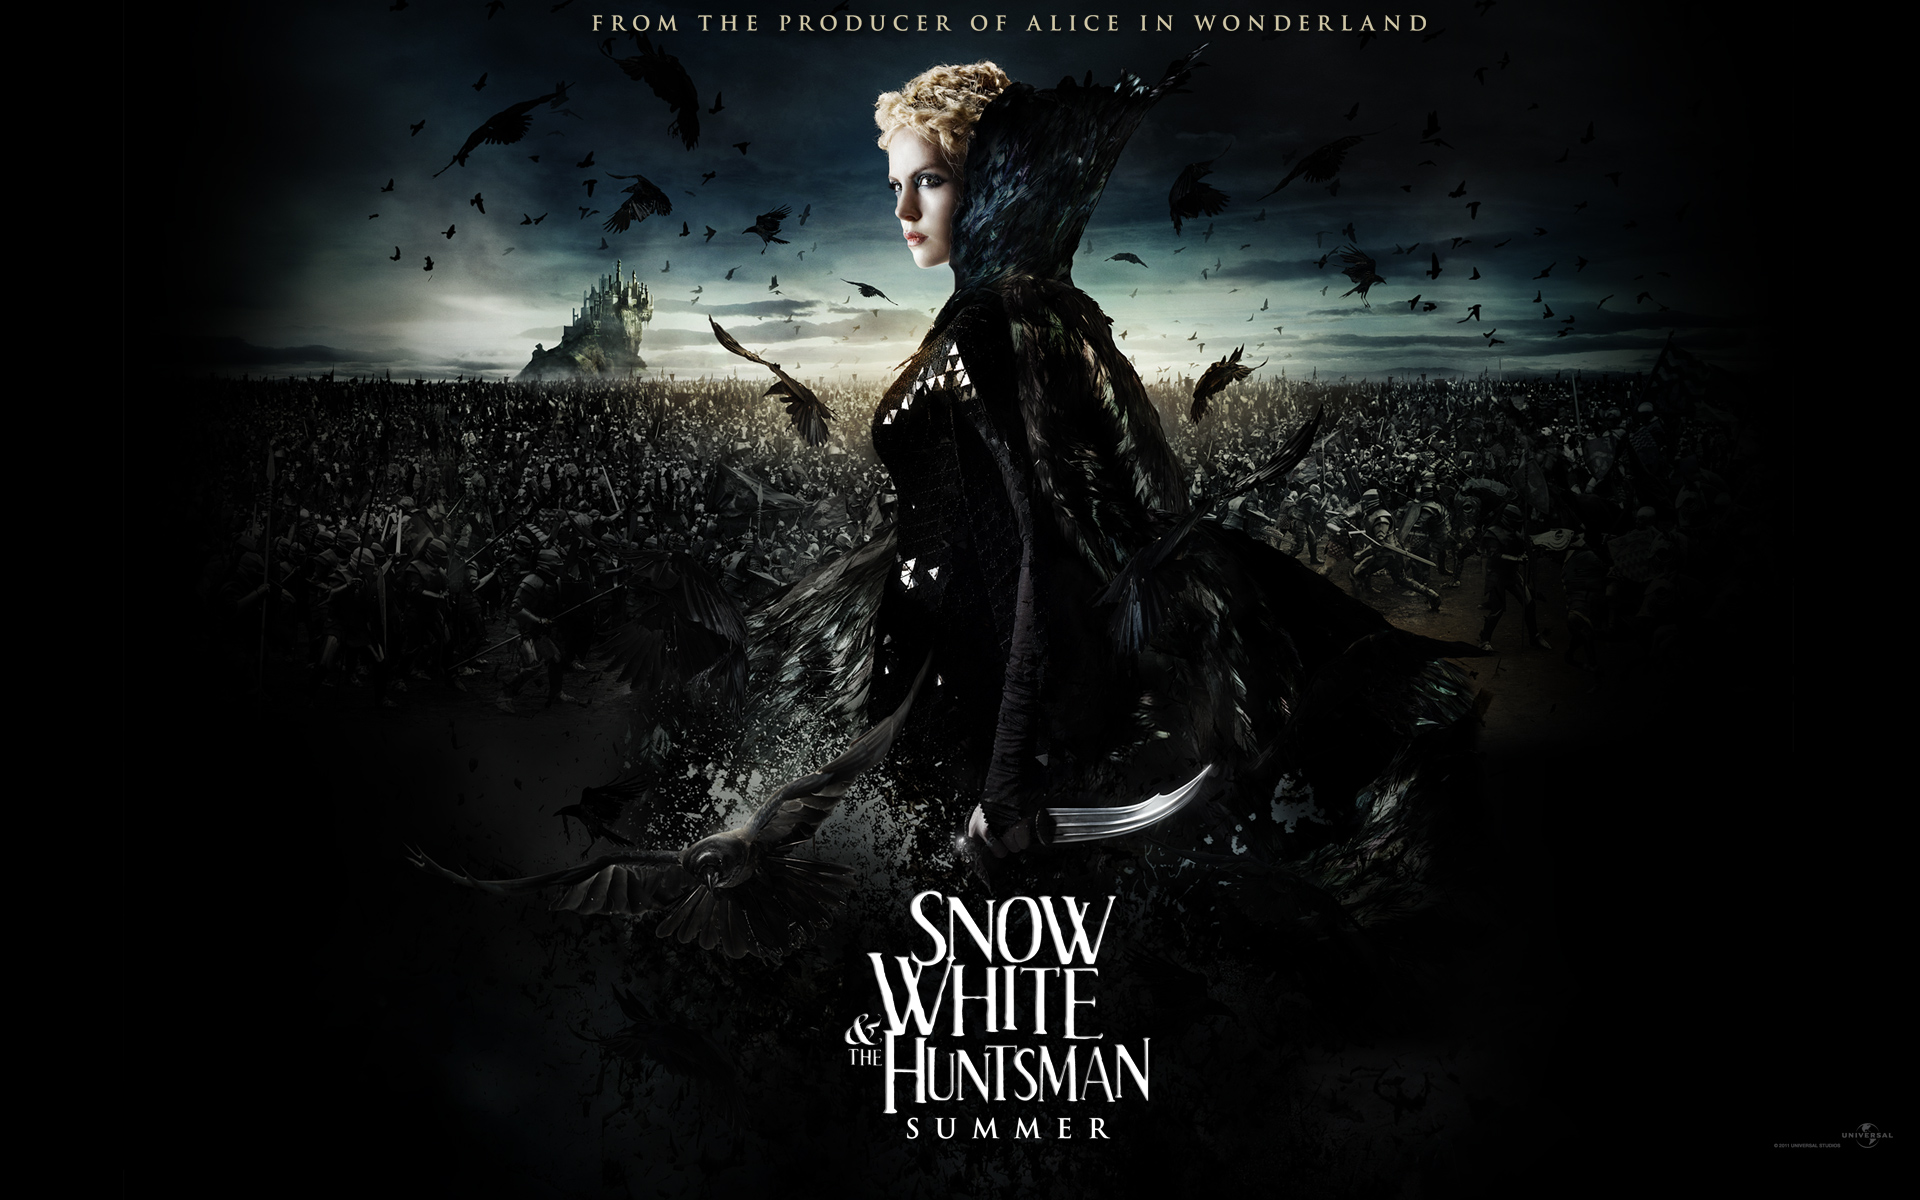 http://images5.fanpop.com/image/photos/26700000/snow-white-and-the-huntsman-charlize-theron-wall-snow-white-and-the-huntsman-26753239-1920-1200.jpg